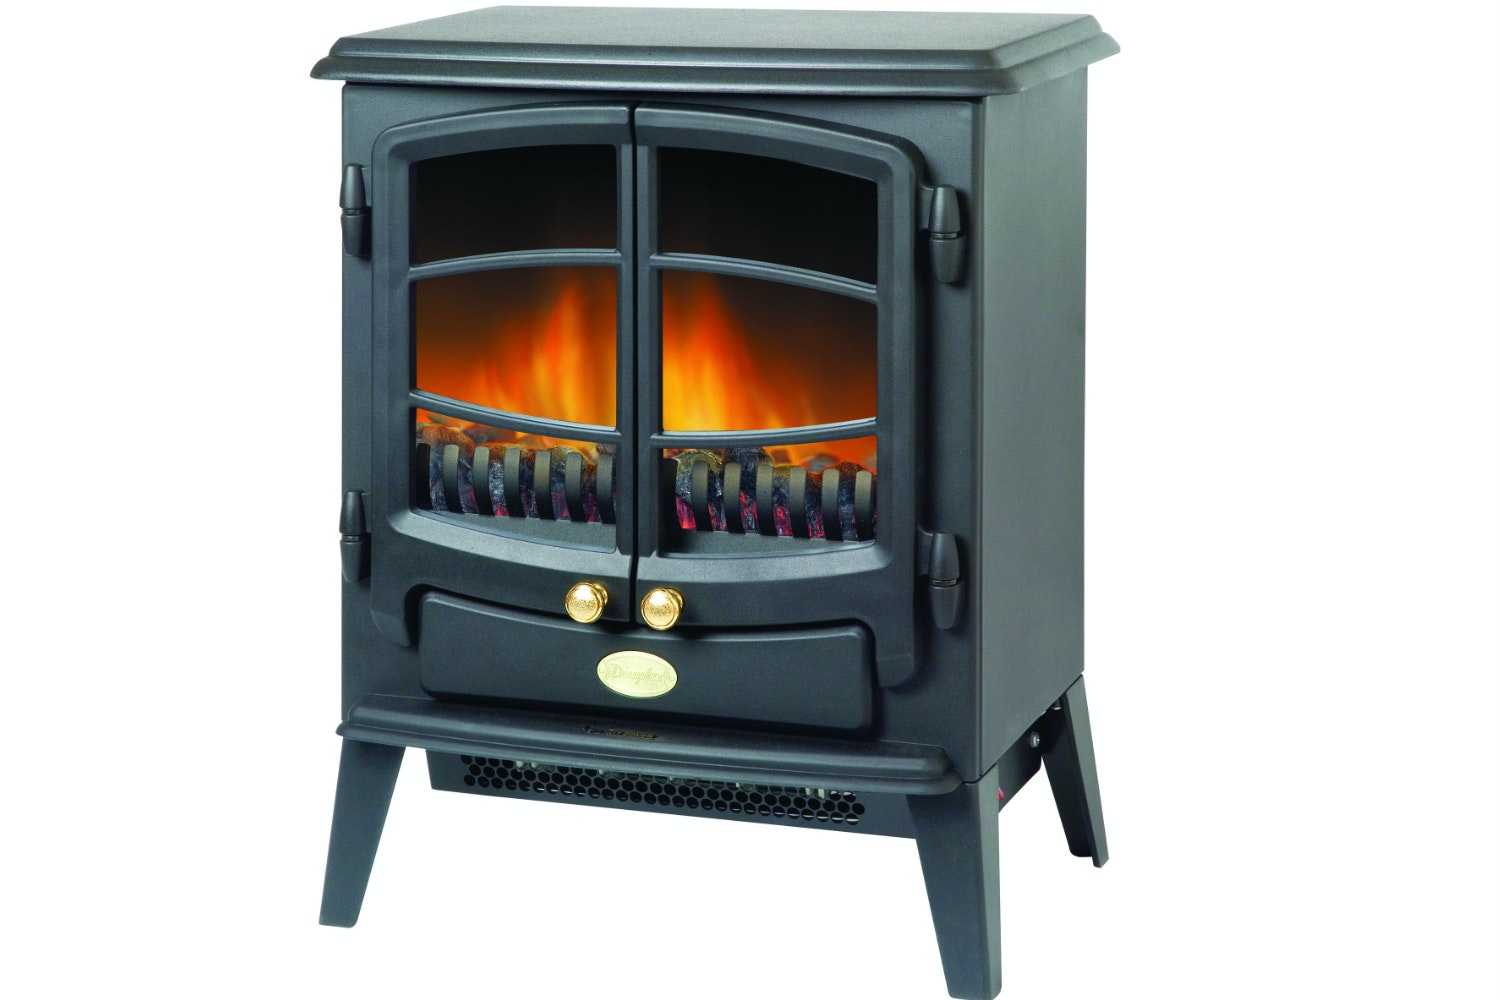 Dimplex 2KW Electric Stove